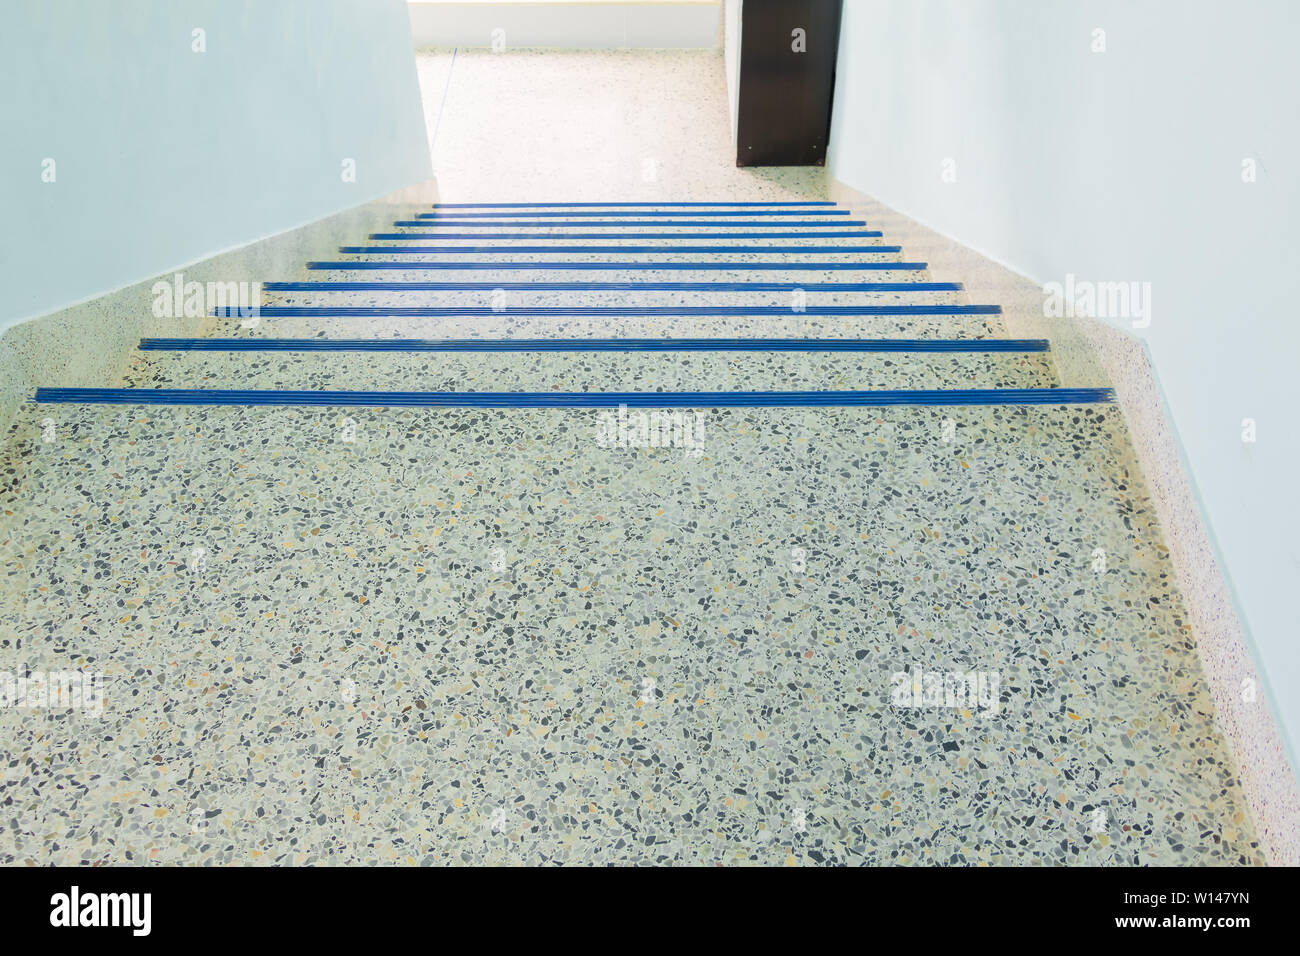 Stairs Walkway Down Terrazzo Floor Select Focus With